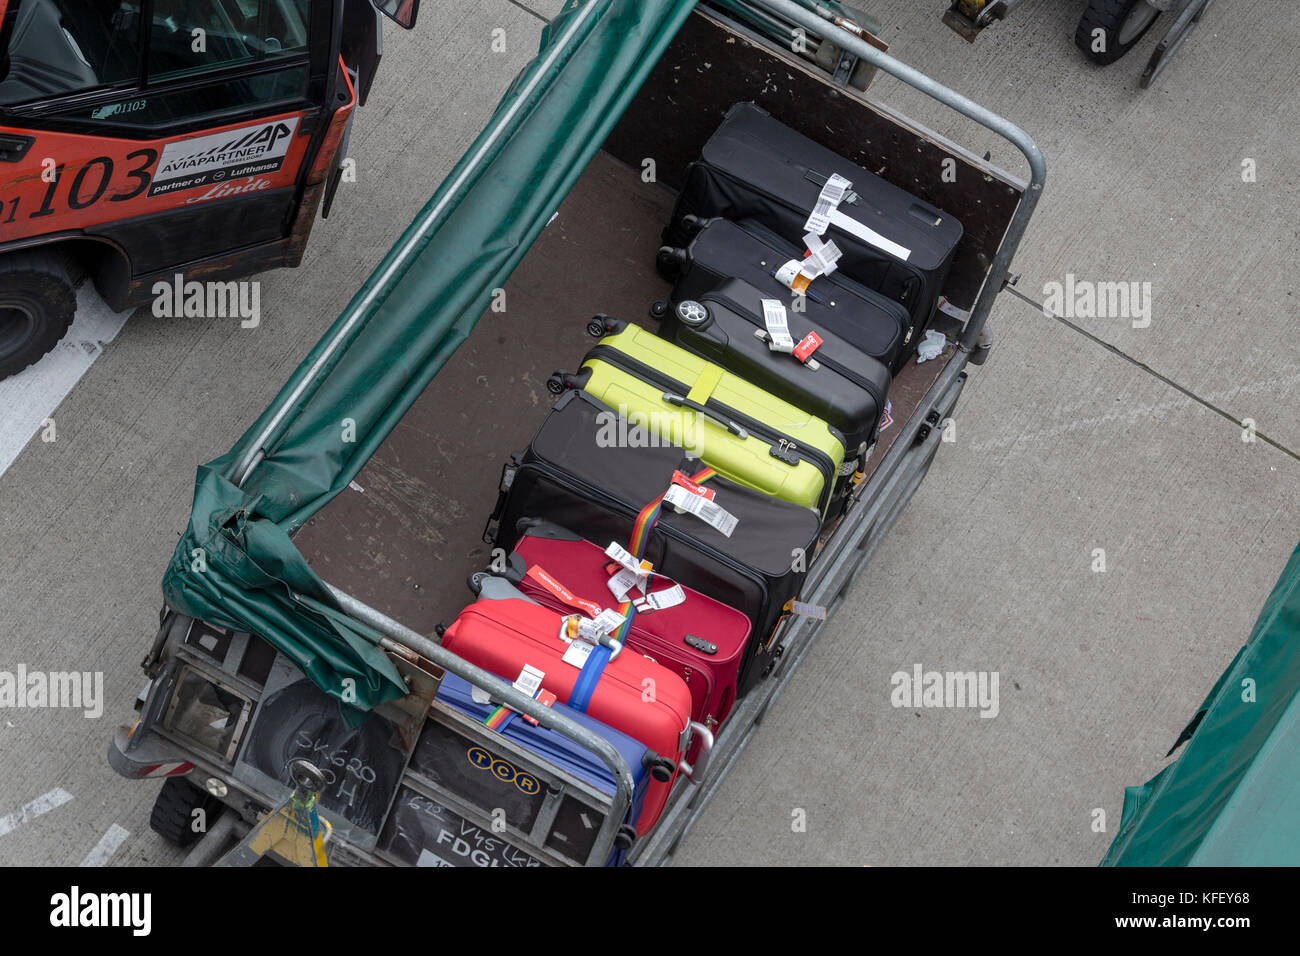 Top view of loading luggage of passengers before the flight departure from an airport - Stock Image